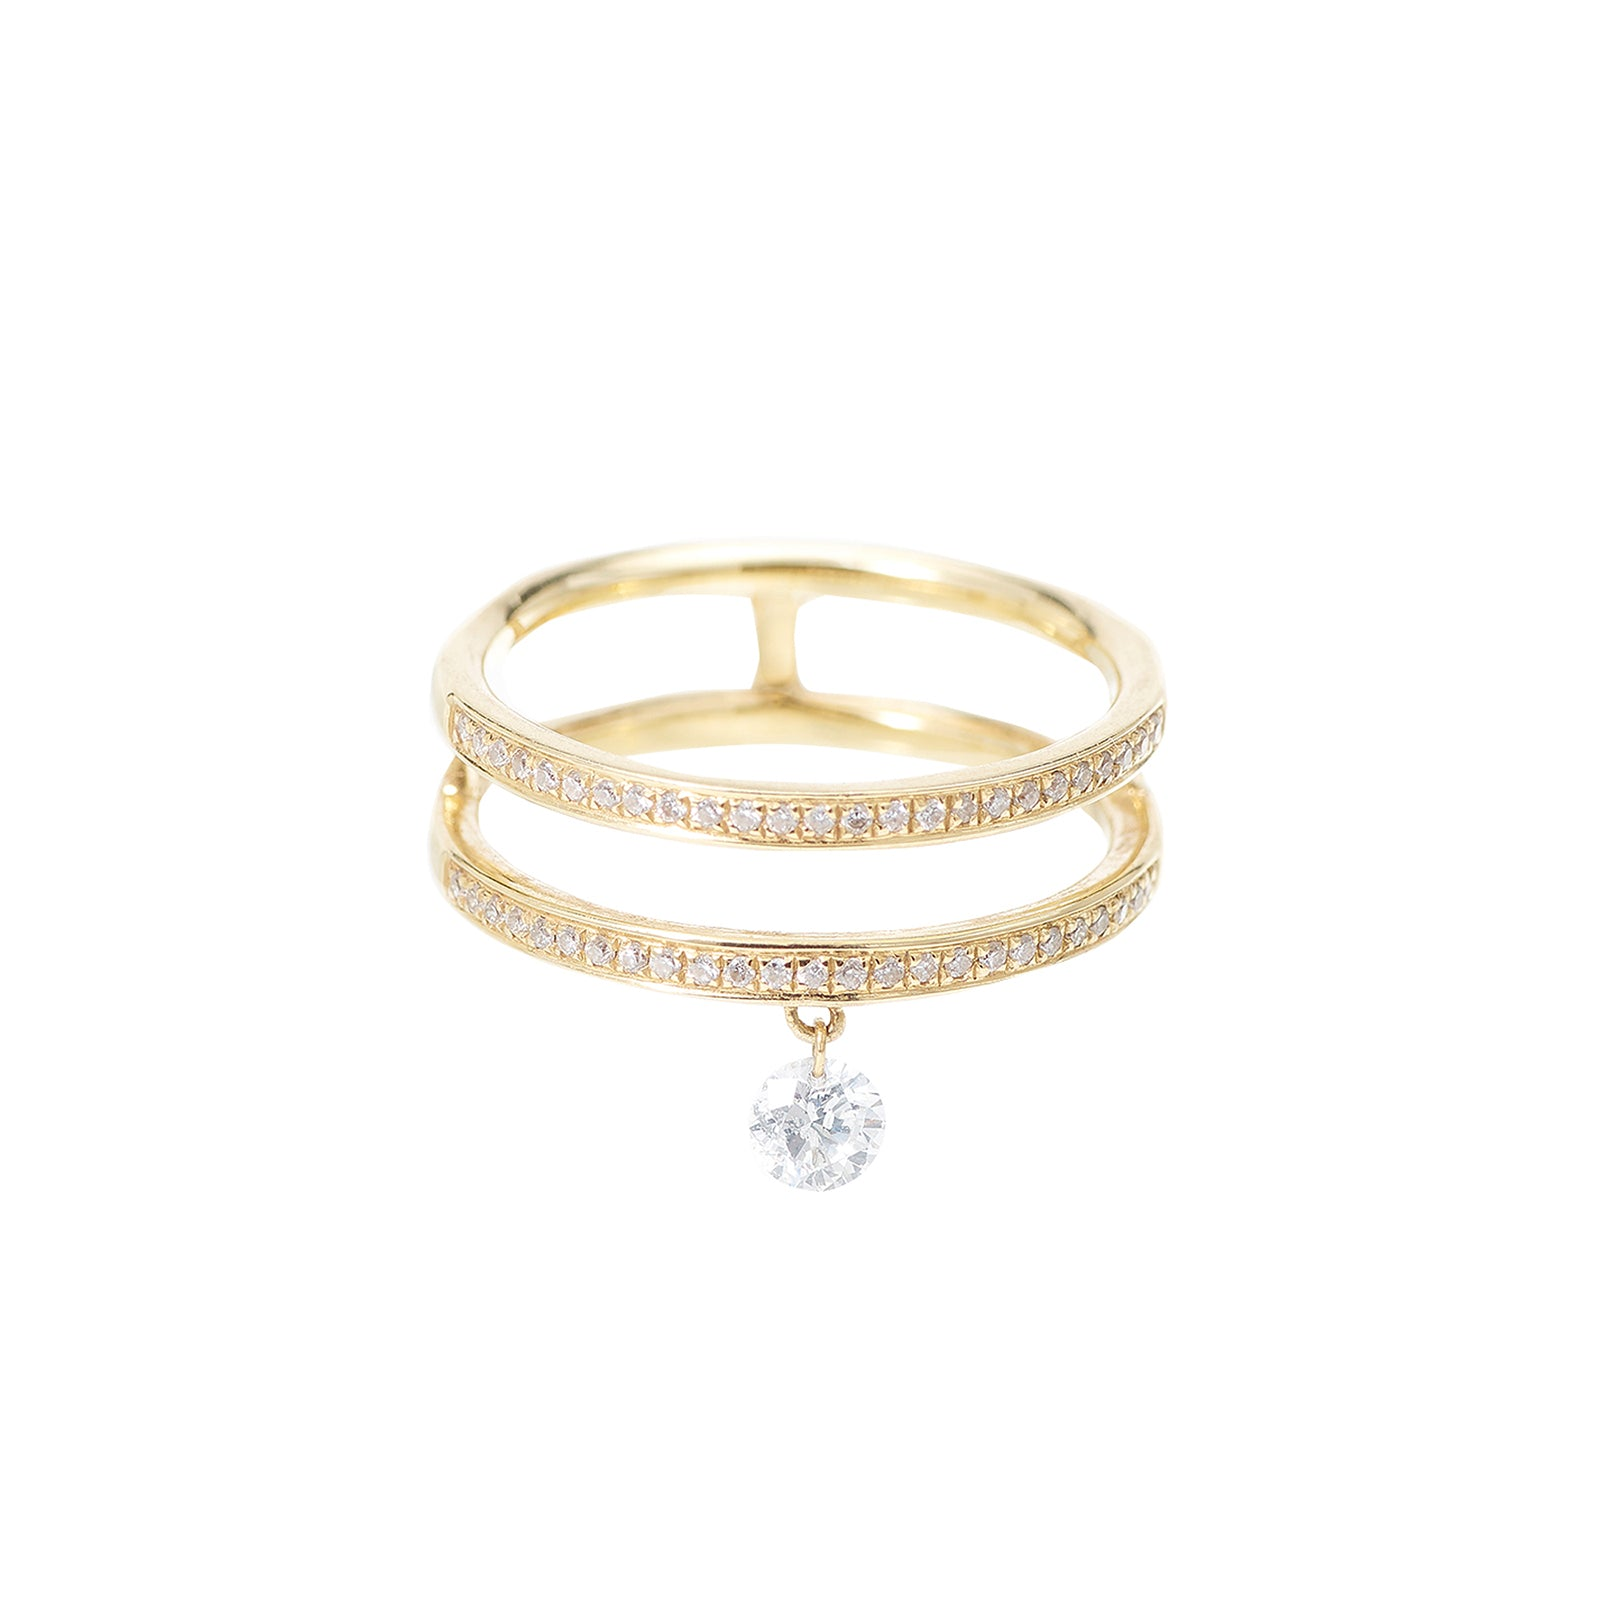 Persée Paris Zéus Double Hoop Diamond Ring - Yellow Gold - Rings - Broken English Jewelry